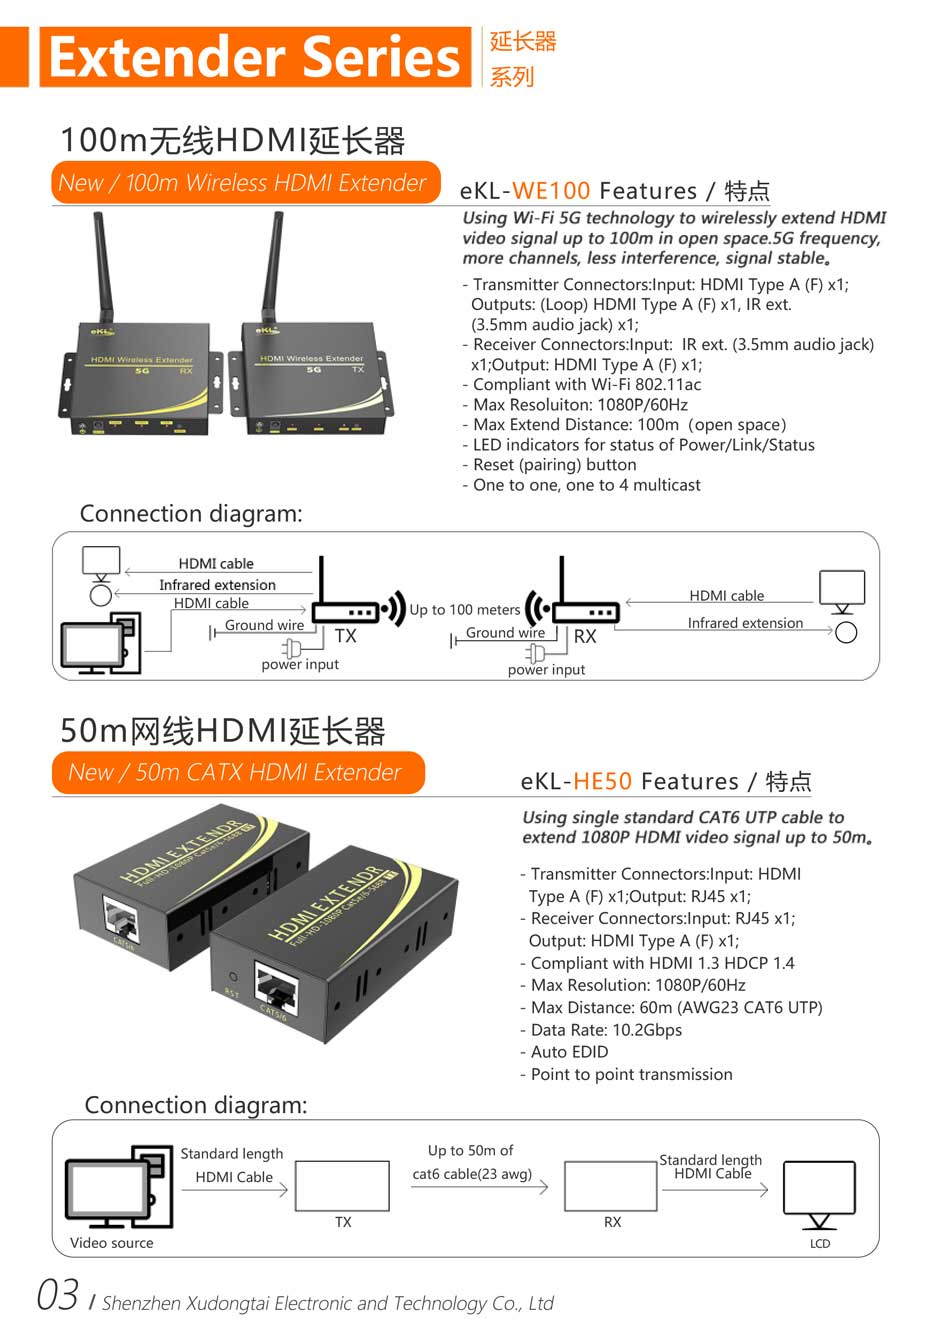 2021 Xudongtai ekL Electronic Product Manual-Extender Introduction